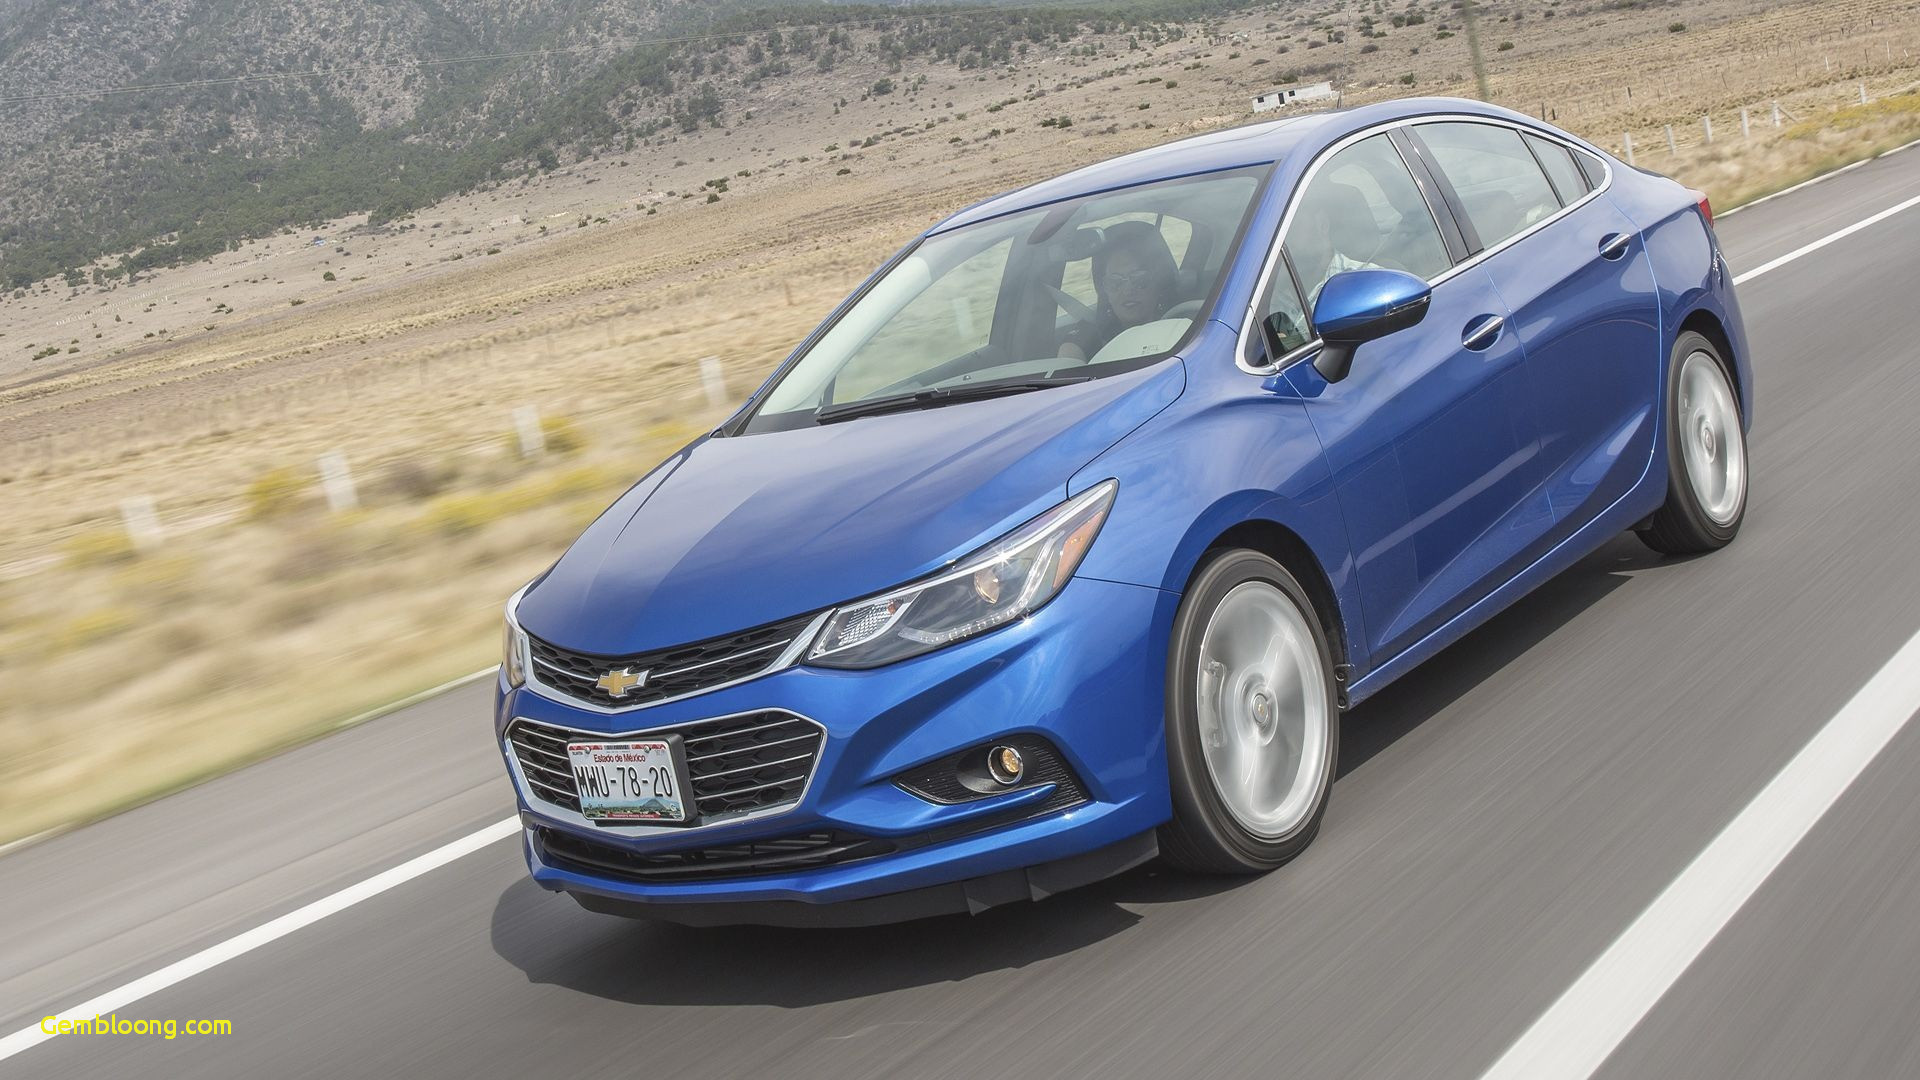 2020 Chevy Cruze Inspirational 2020 Chevy Cruze Lovely 2020 Chevy Cruze Release Date at Automotive